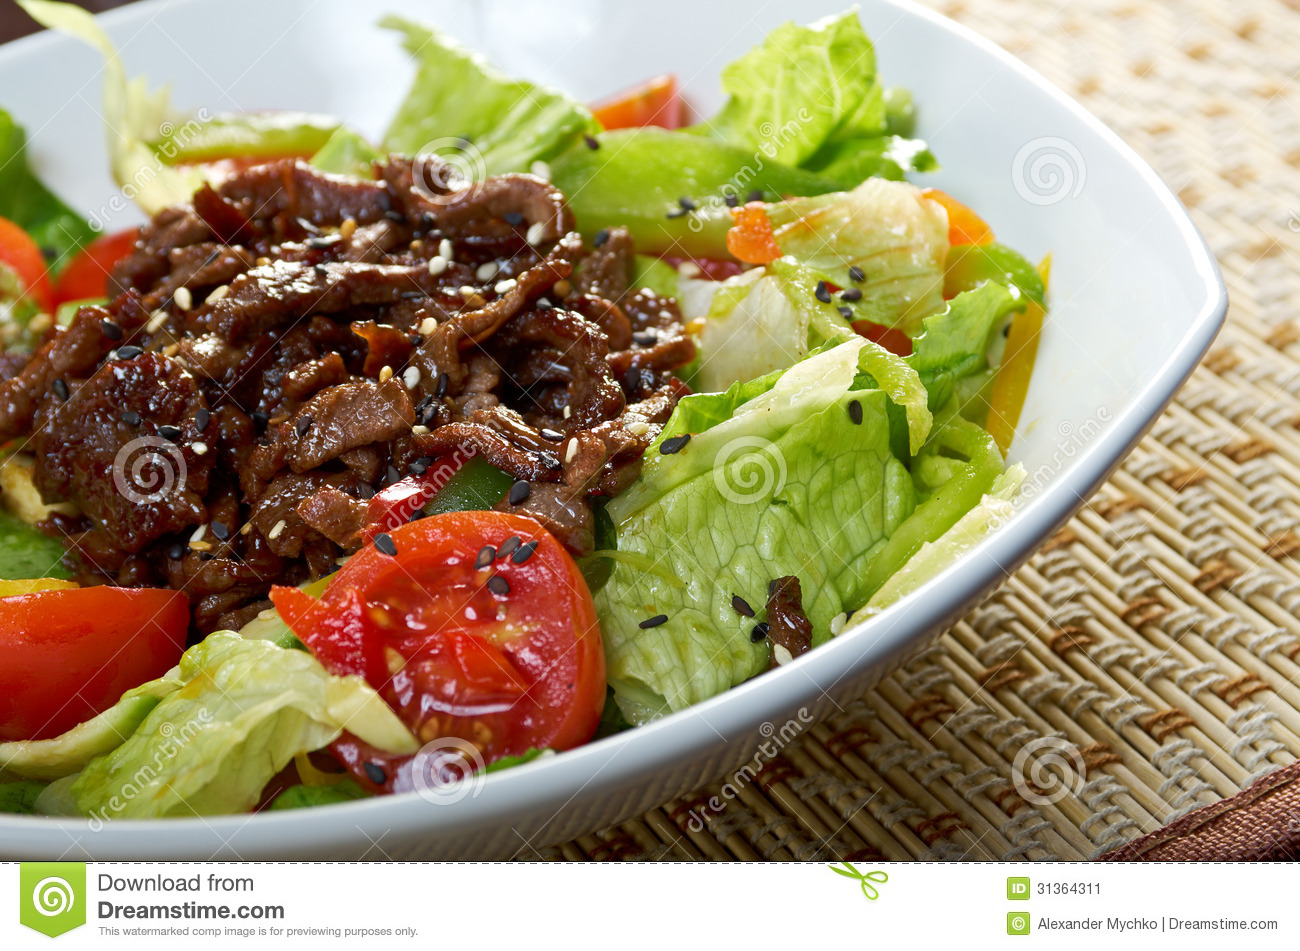 Roasted Meat And Vegetables Stock Image - Image: 31364311